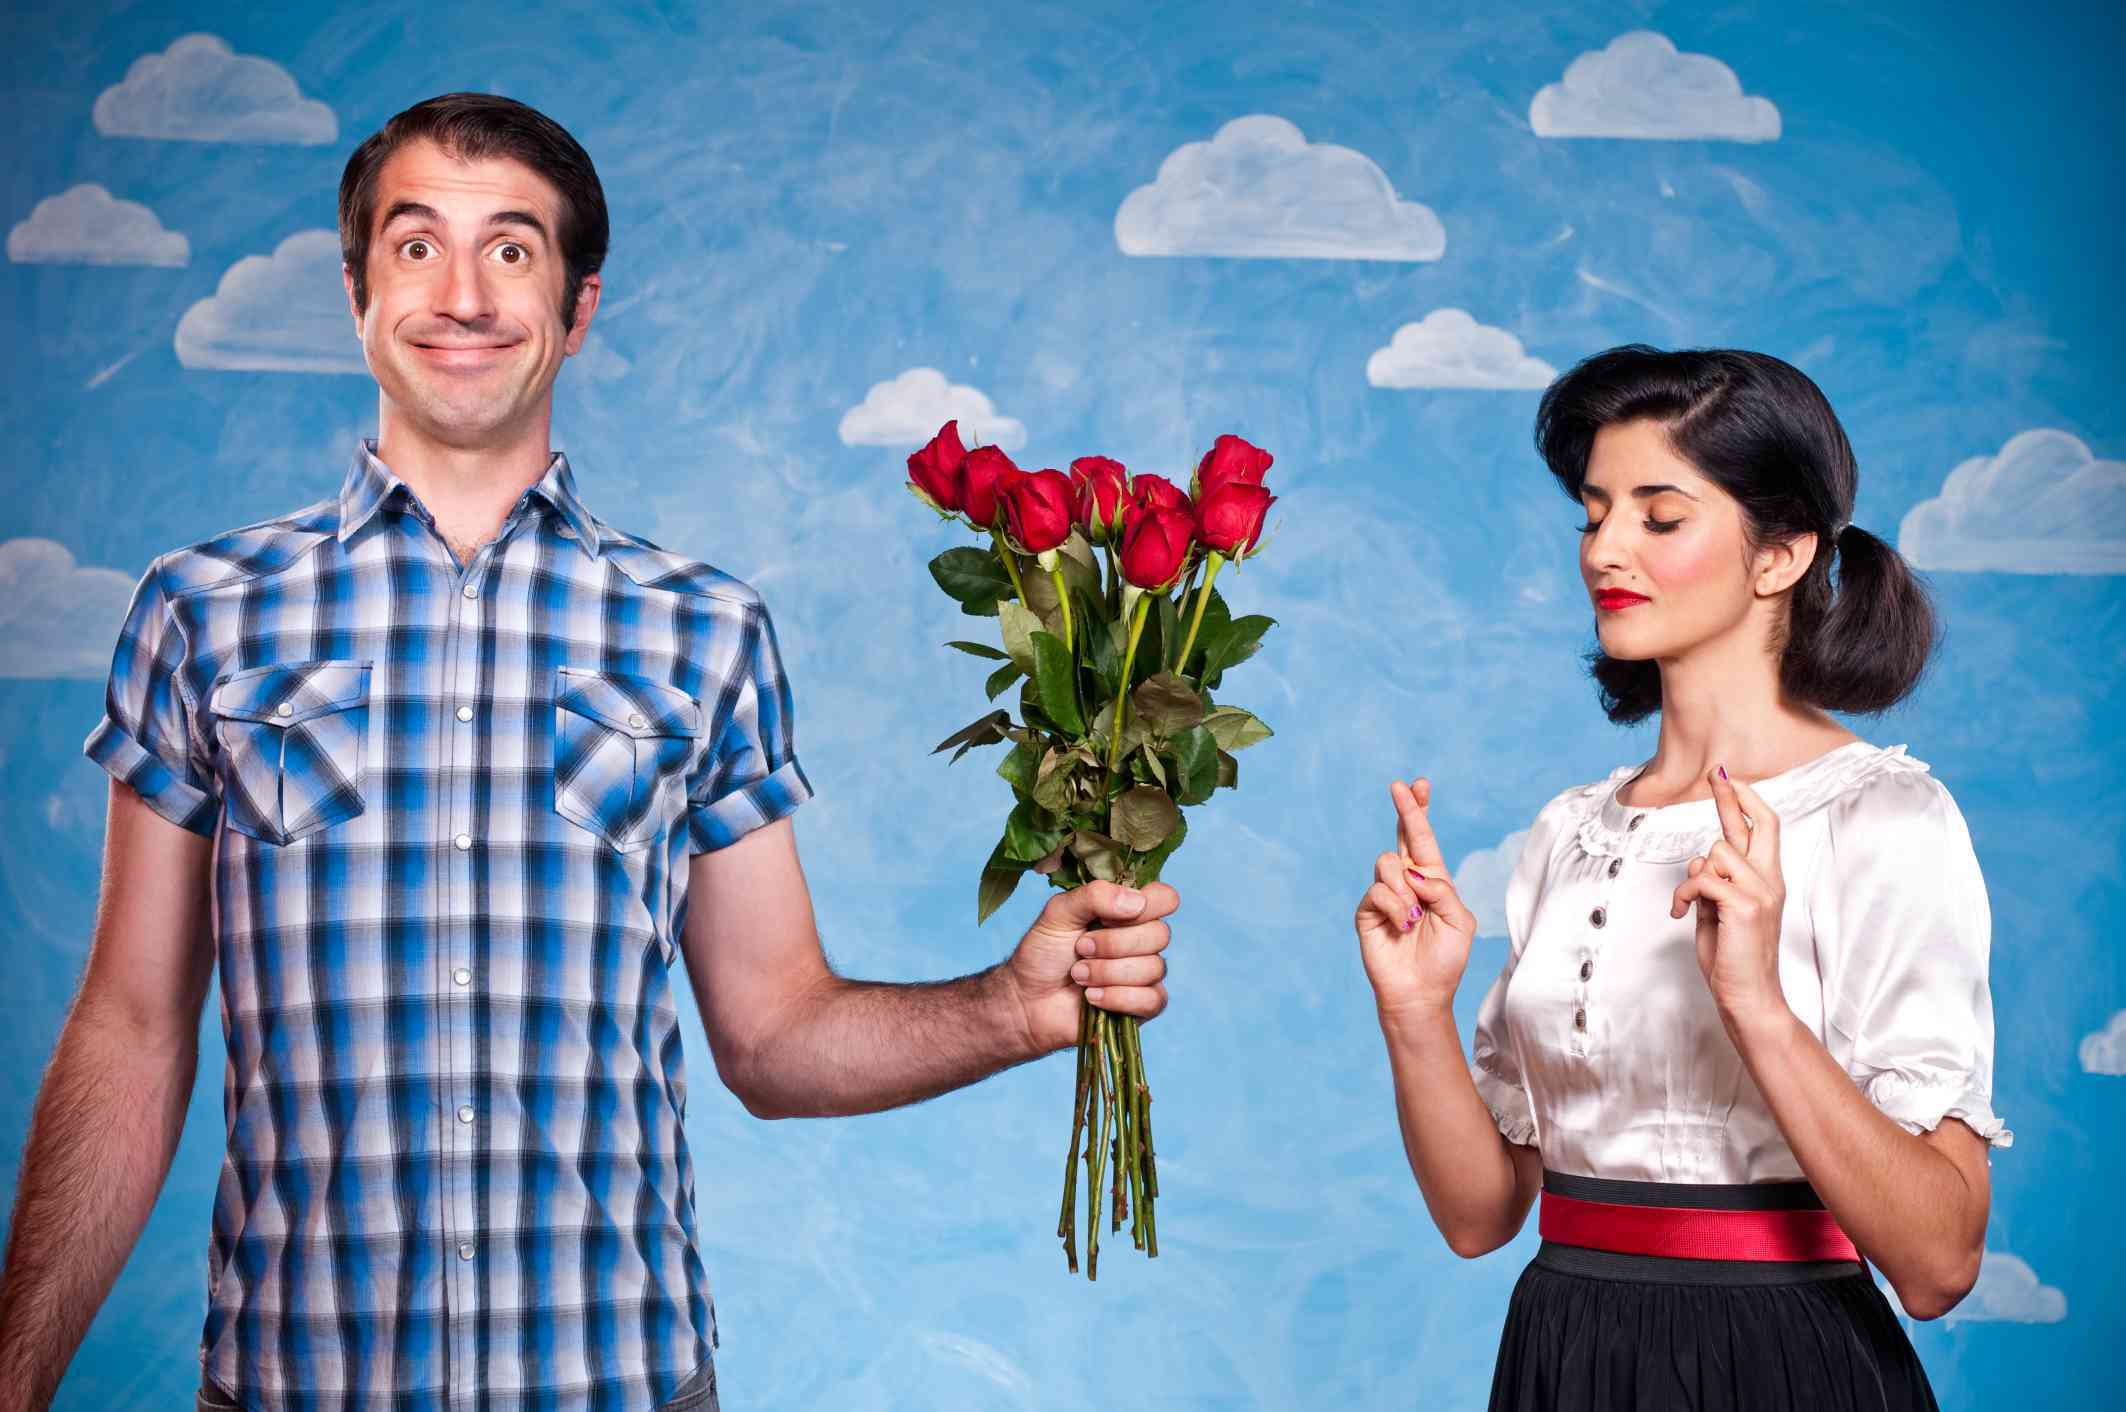 arranged marriage dating site